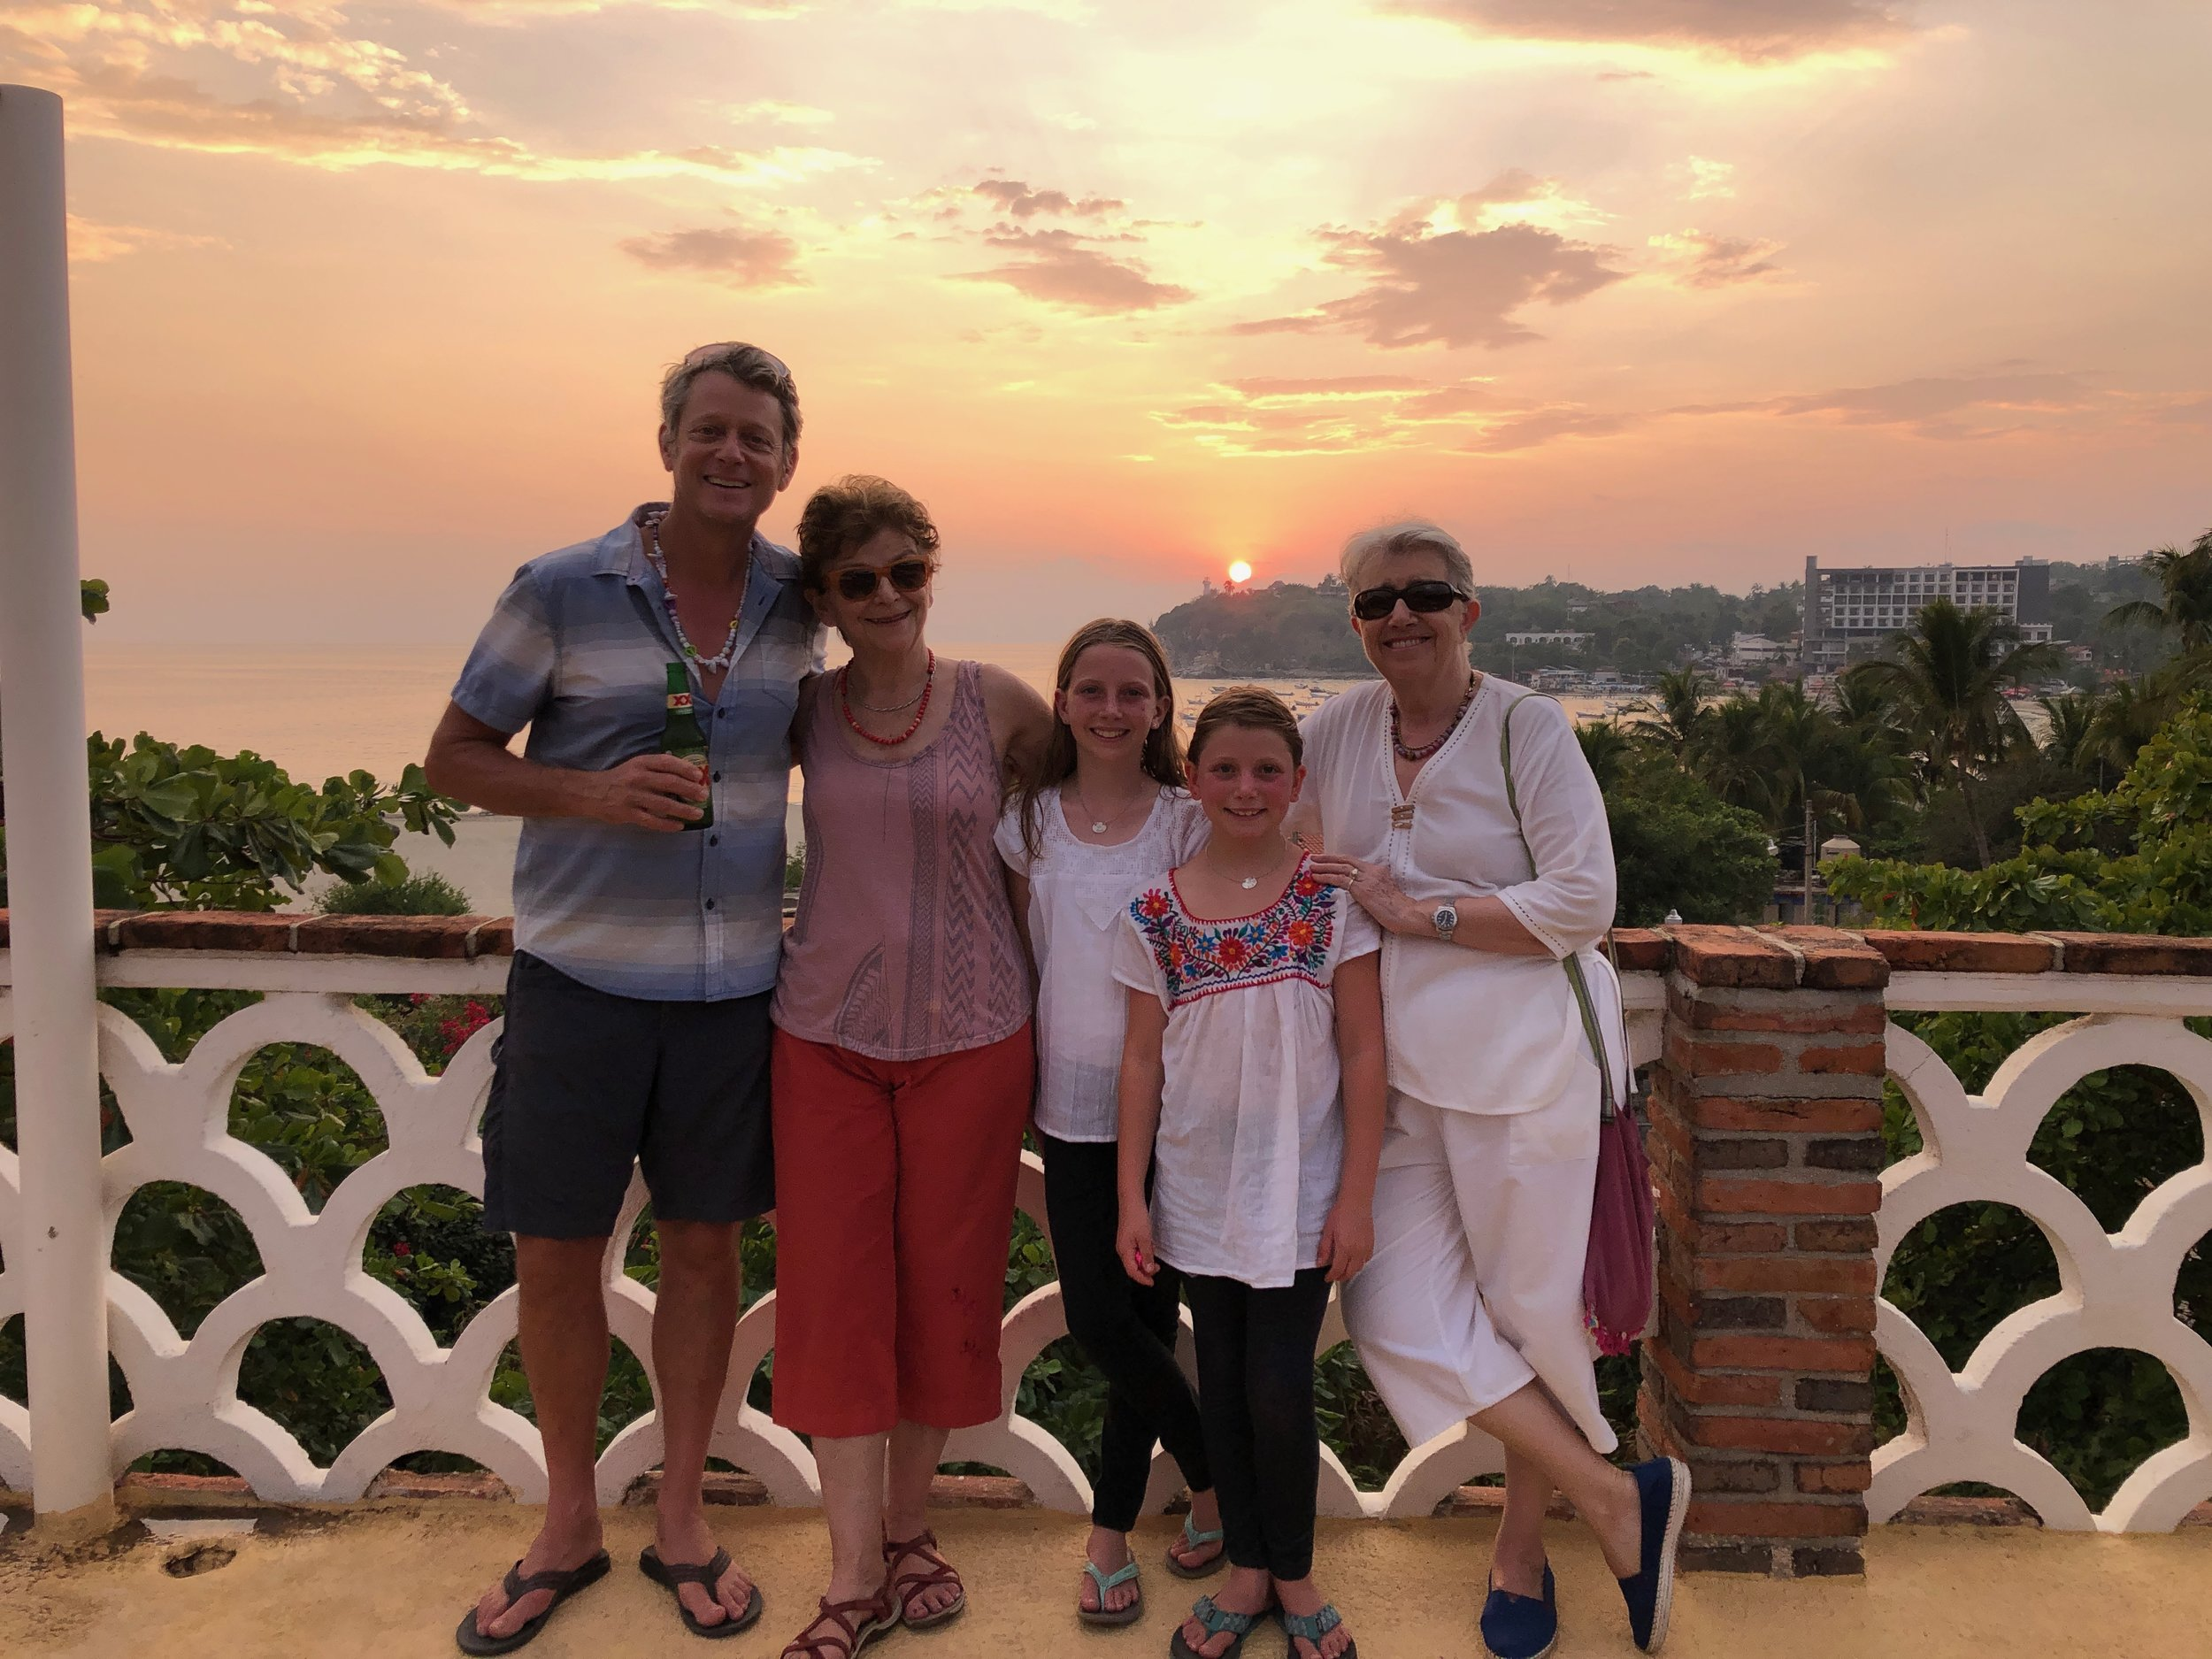 John, Sylvia, Ellie, Isla, and Carolyn